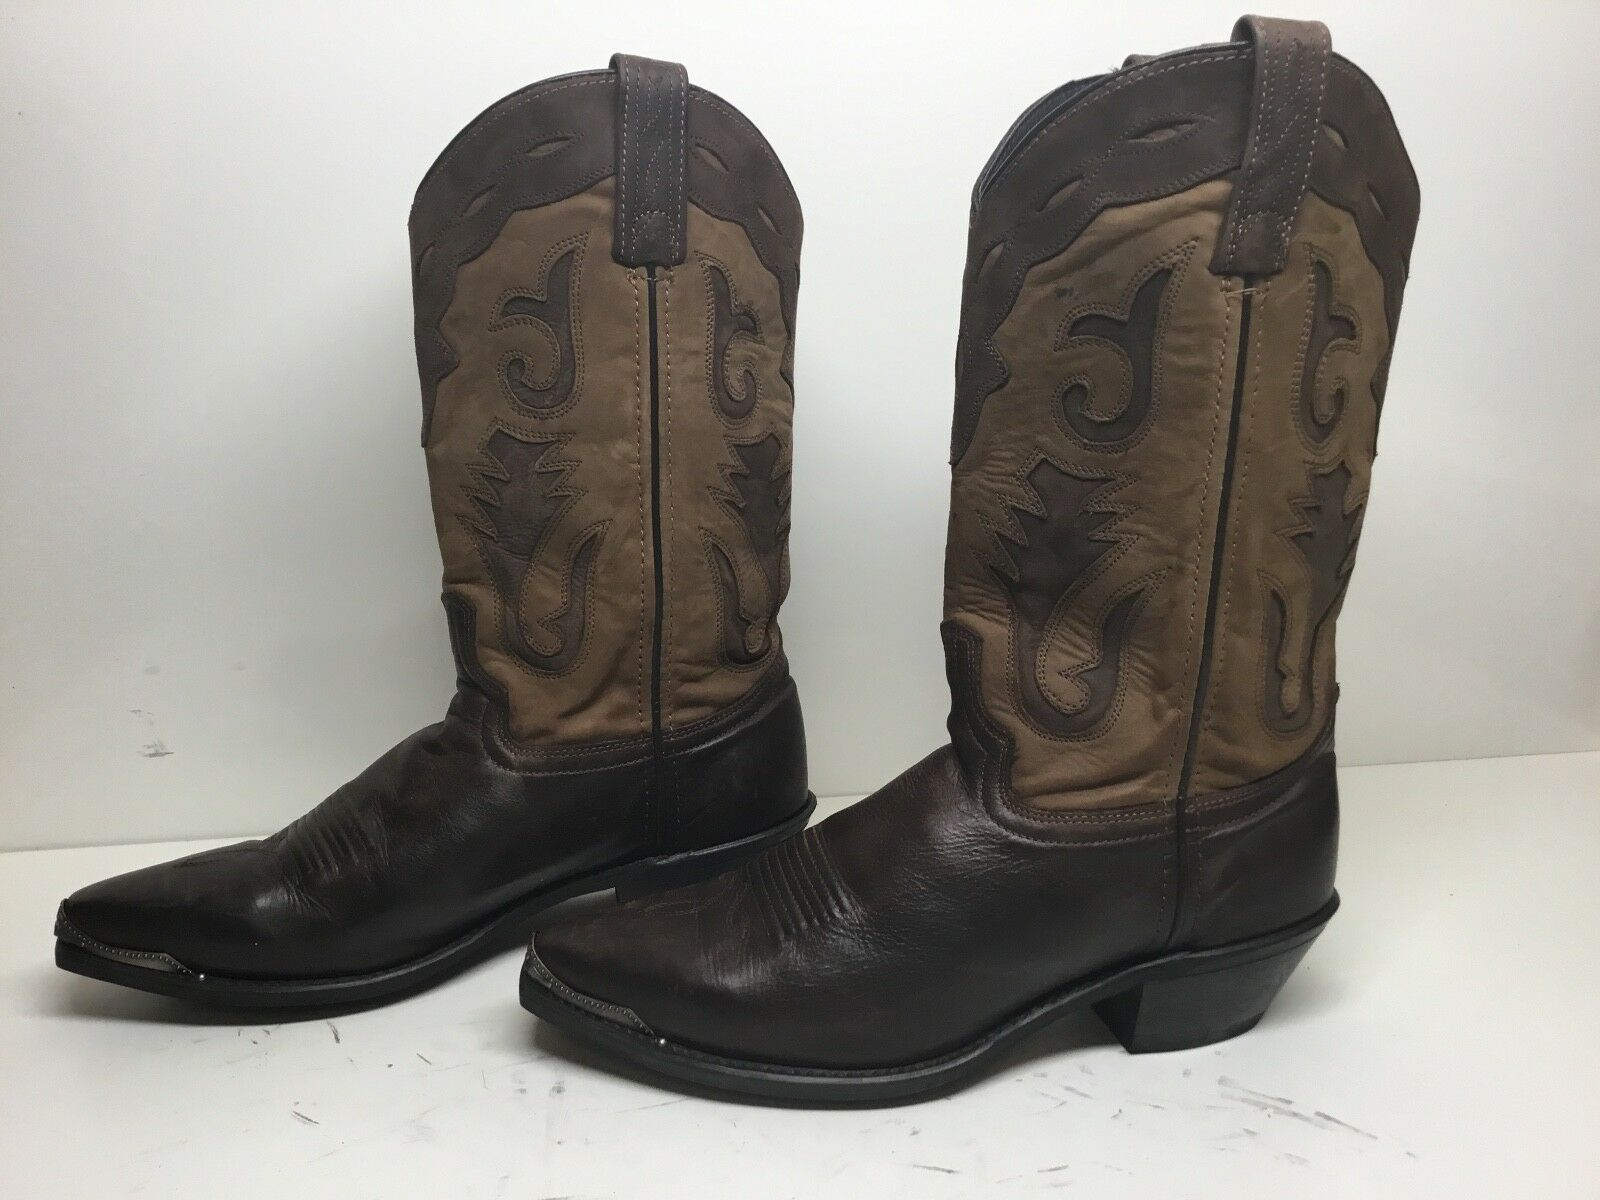 VTG COWBOY MENS UNBRANDED TOE RAND COWBOY VTG LEATHER BROWN BOOT SIZE 8.5 D 613826